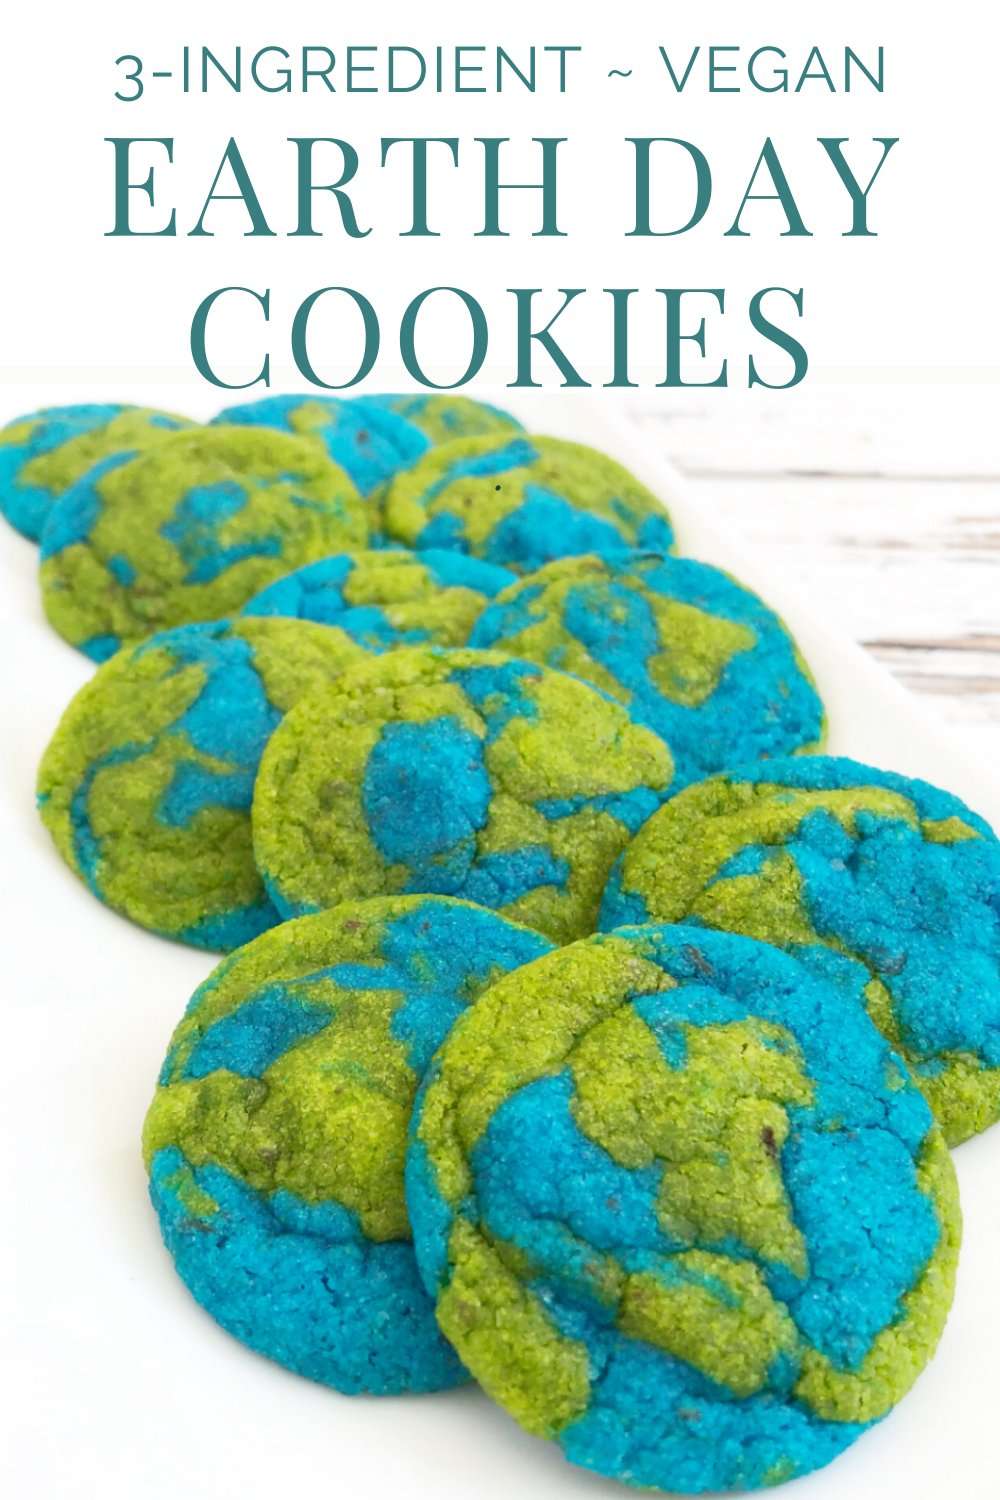 Vegan Earth Day Cookies! These semi-homemade and dairy-free cookies are super easy to make and are absolutely perfect for Earth Day! #earthdaycookies #earthday #easyearthdayprojects #veganearthday #earthdayrecipes #earthdayrecipesforkids #thiswifecooksrecipes #earthdaycookiesrecipes #veganearthdayrecipes via @thiswifecooks